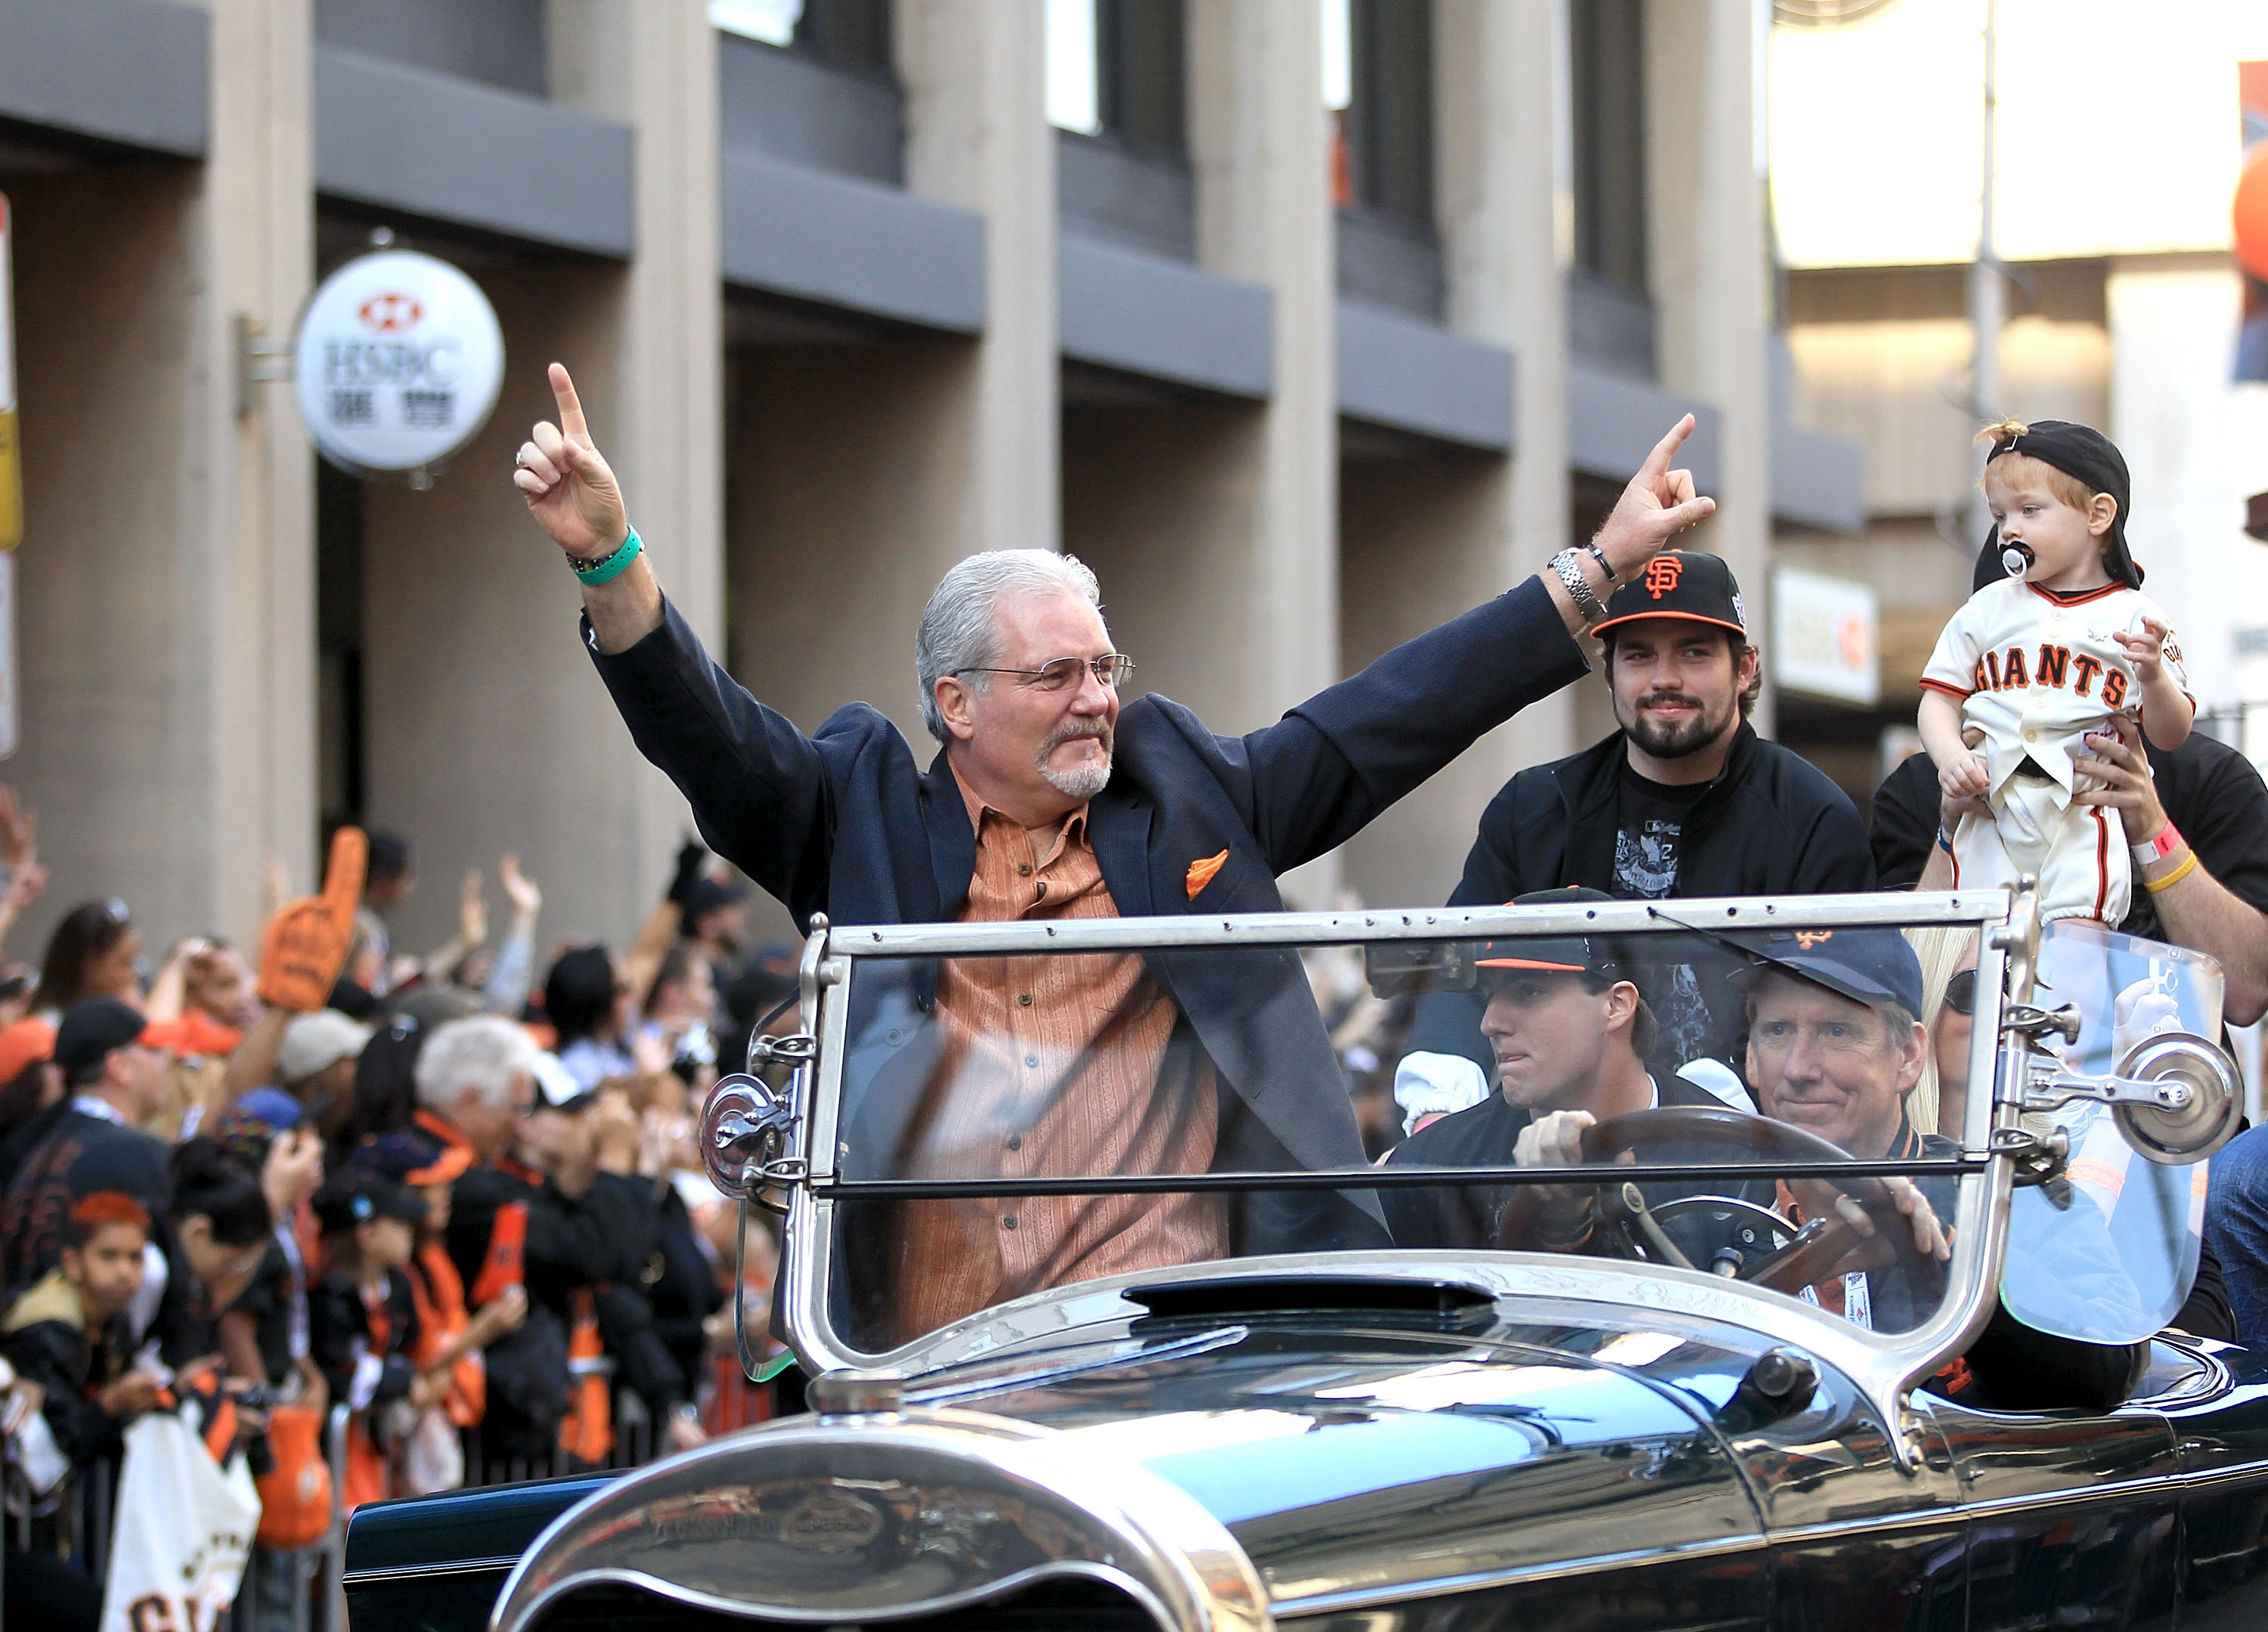 SAN FRANCISCO - NOVEMBER 03:  General Manager Brian Sabean of the San Francisco Giants waves to the crowd during the San Francisco Giants victory parade on November 3, 2010 in San Francisco, California.  (Photo by Ezra Shaw/Getty Images)